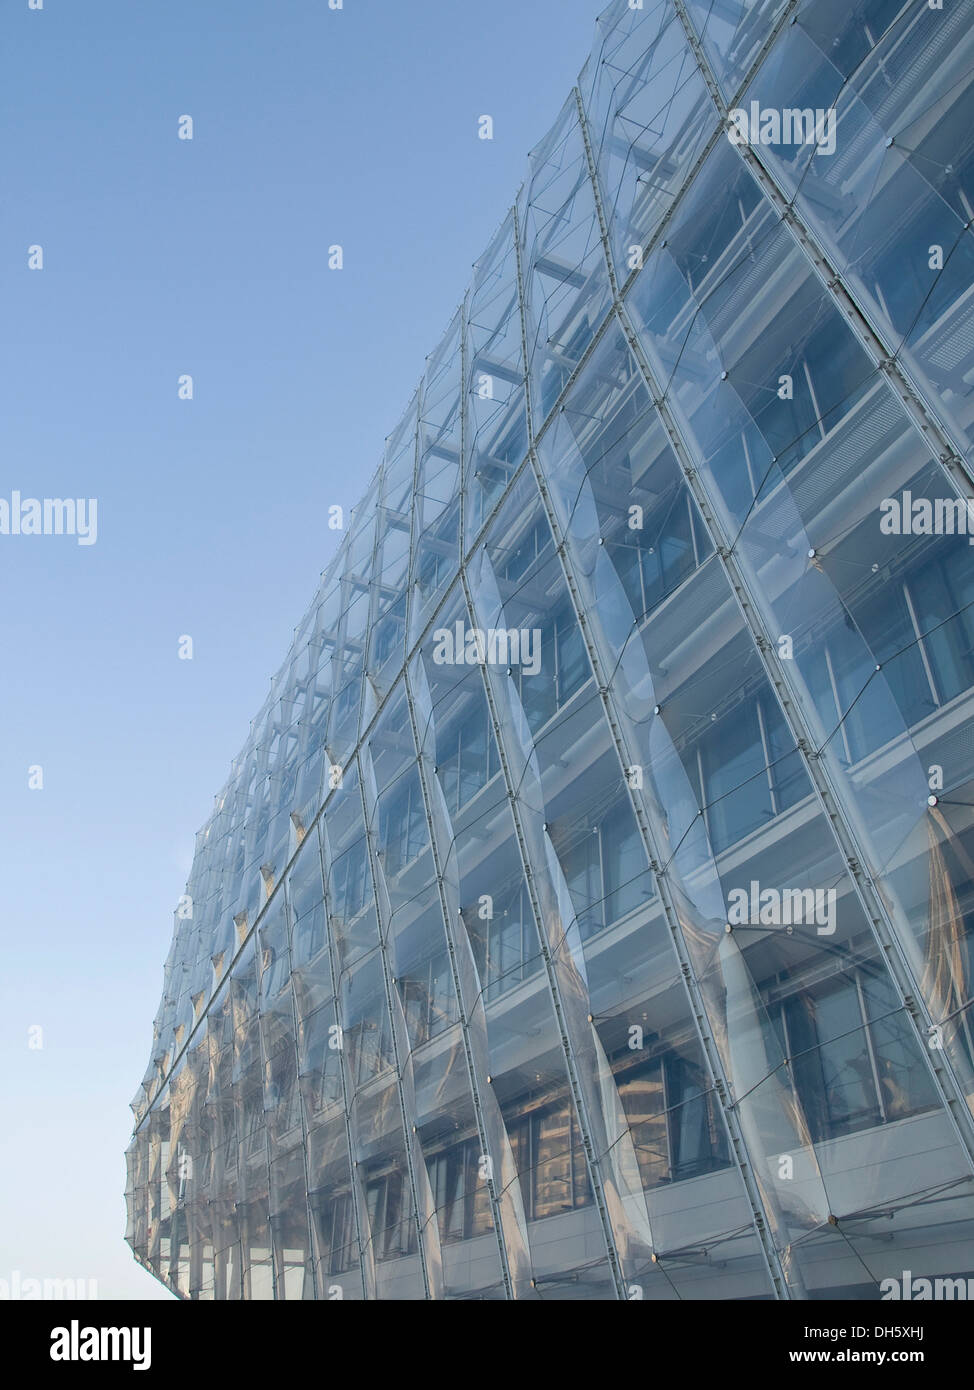 Facade of the Unilever headquarters in the HafenCity district, Hamburg - Stock Image